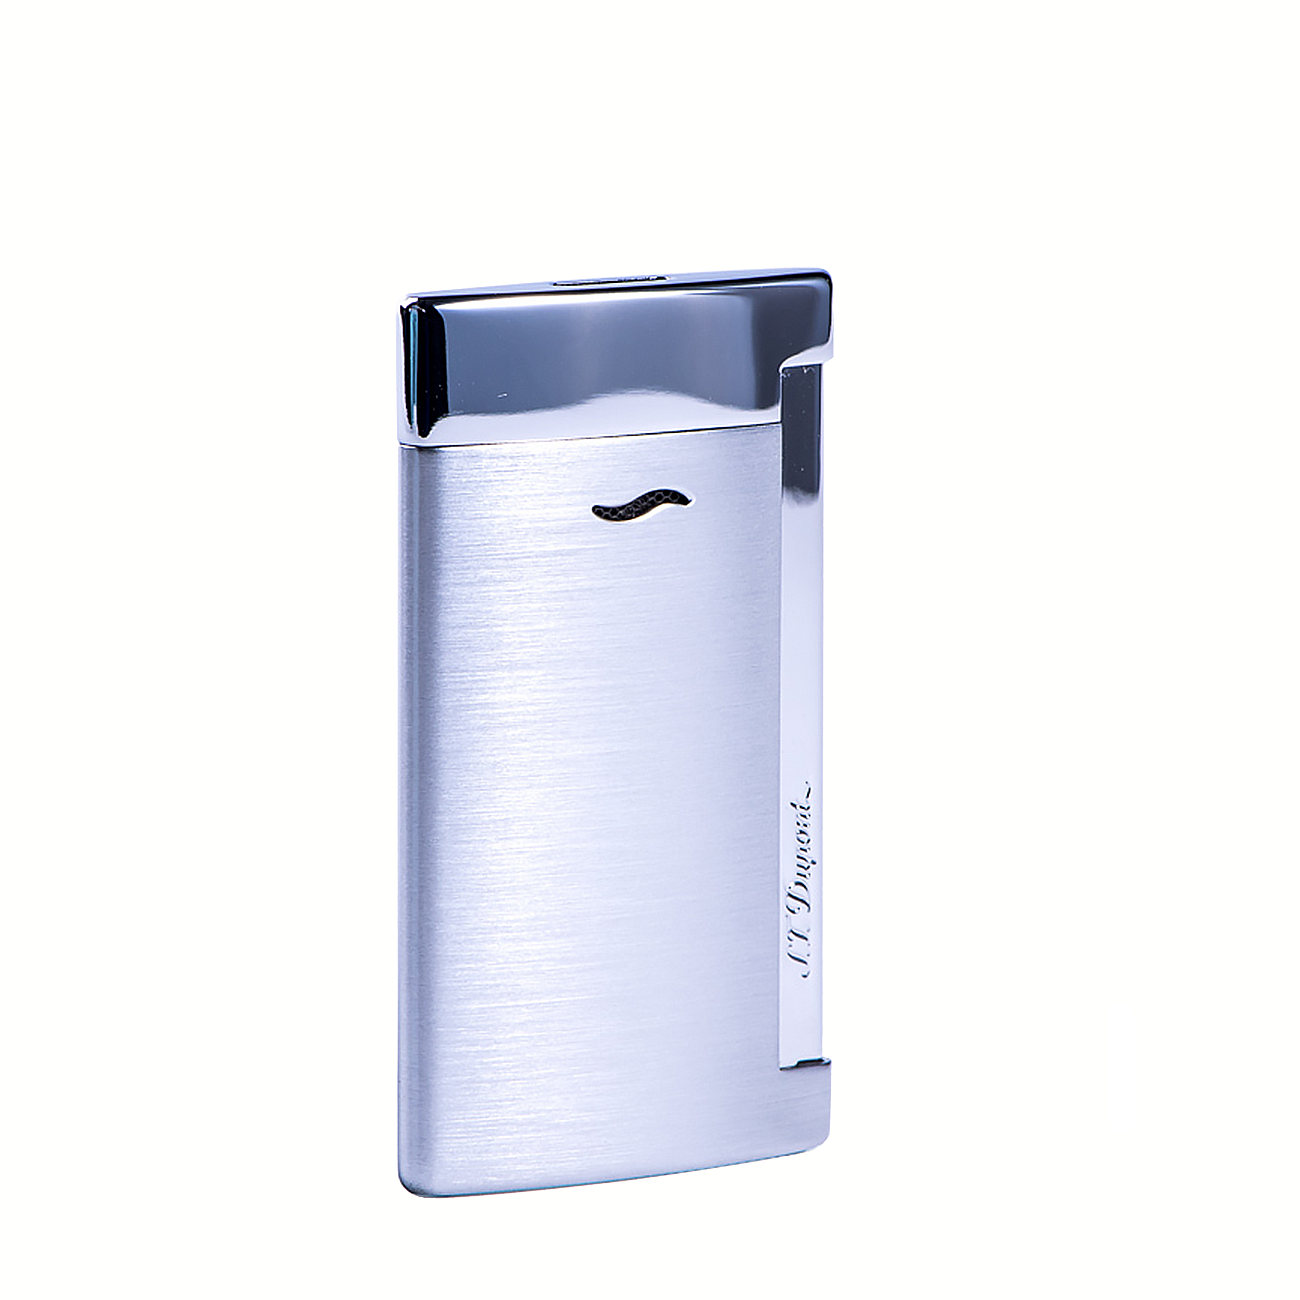 027701 FULL SHINY CHROME LIGHTER imagine produs